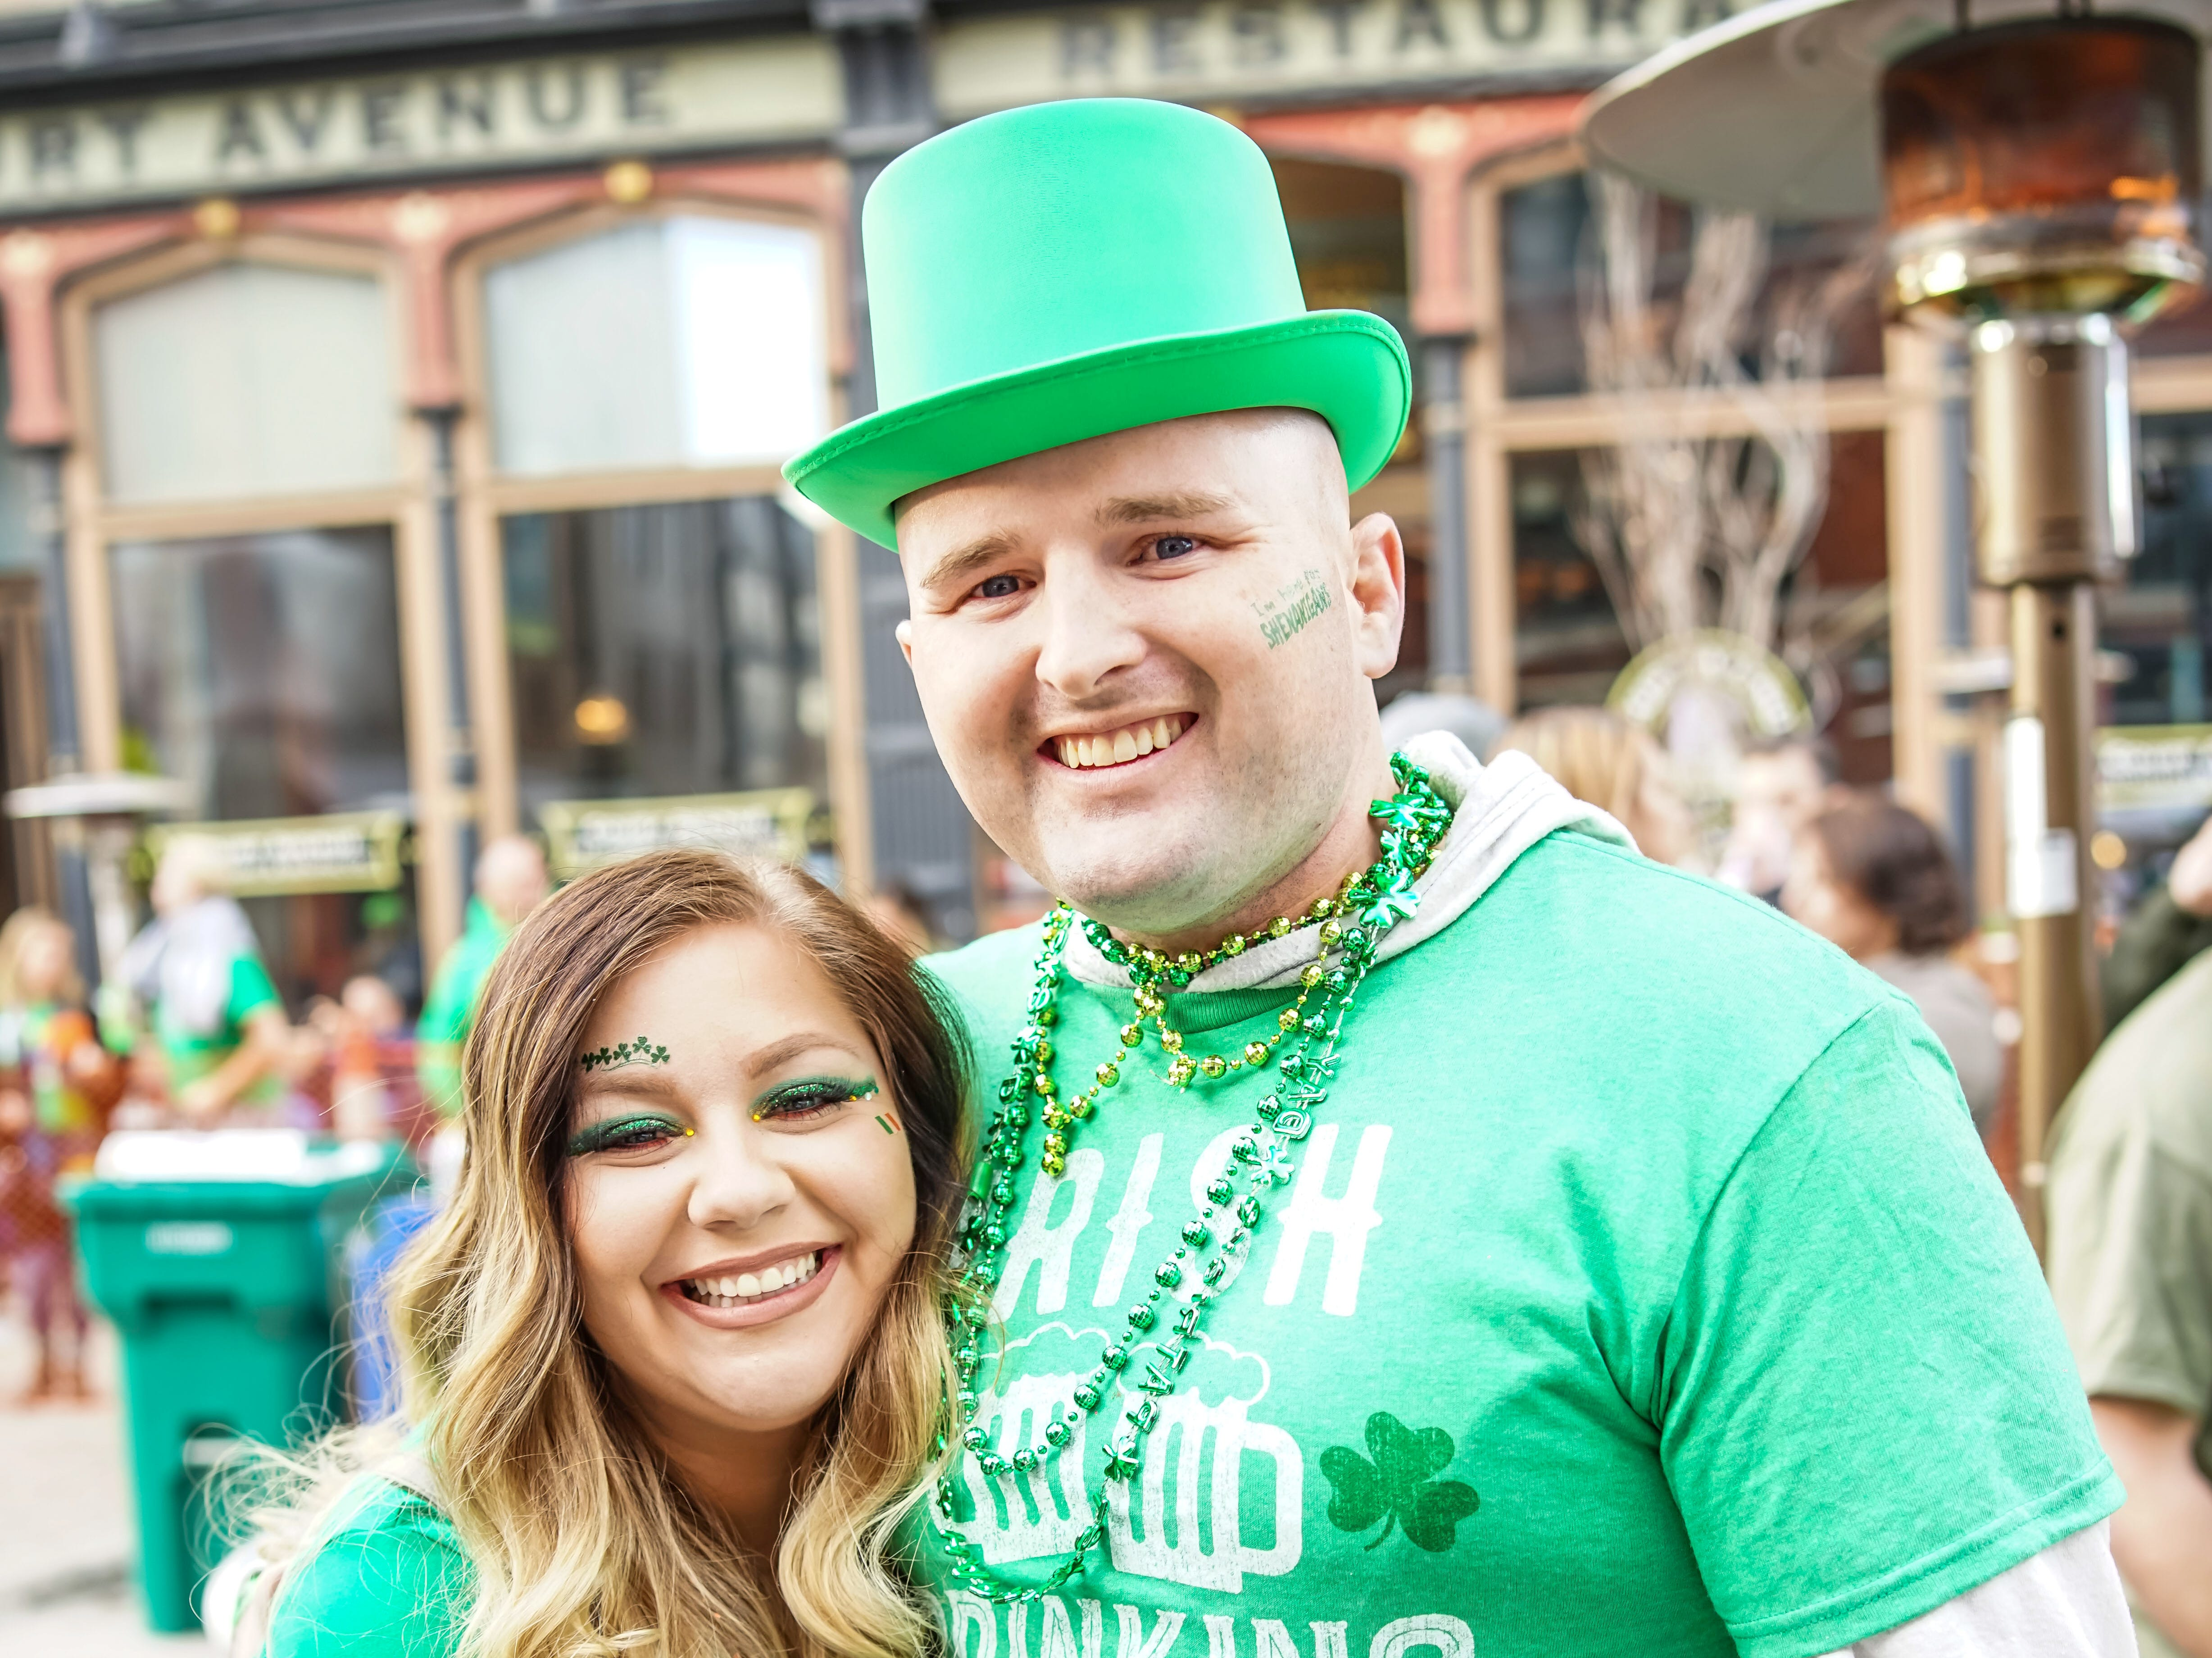 Chloe Miller, 28, and Andrew Miller, 31, both of Des Moines, enjoying their time, Saturday, March 16, 2019, at the Court Avenue Block Party.